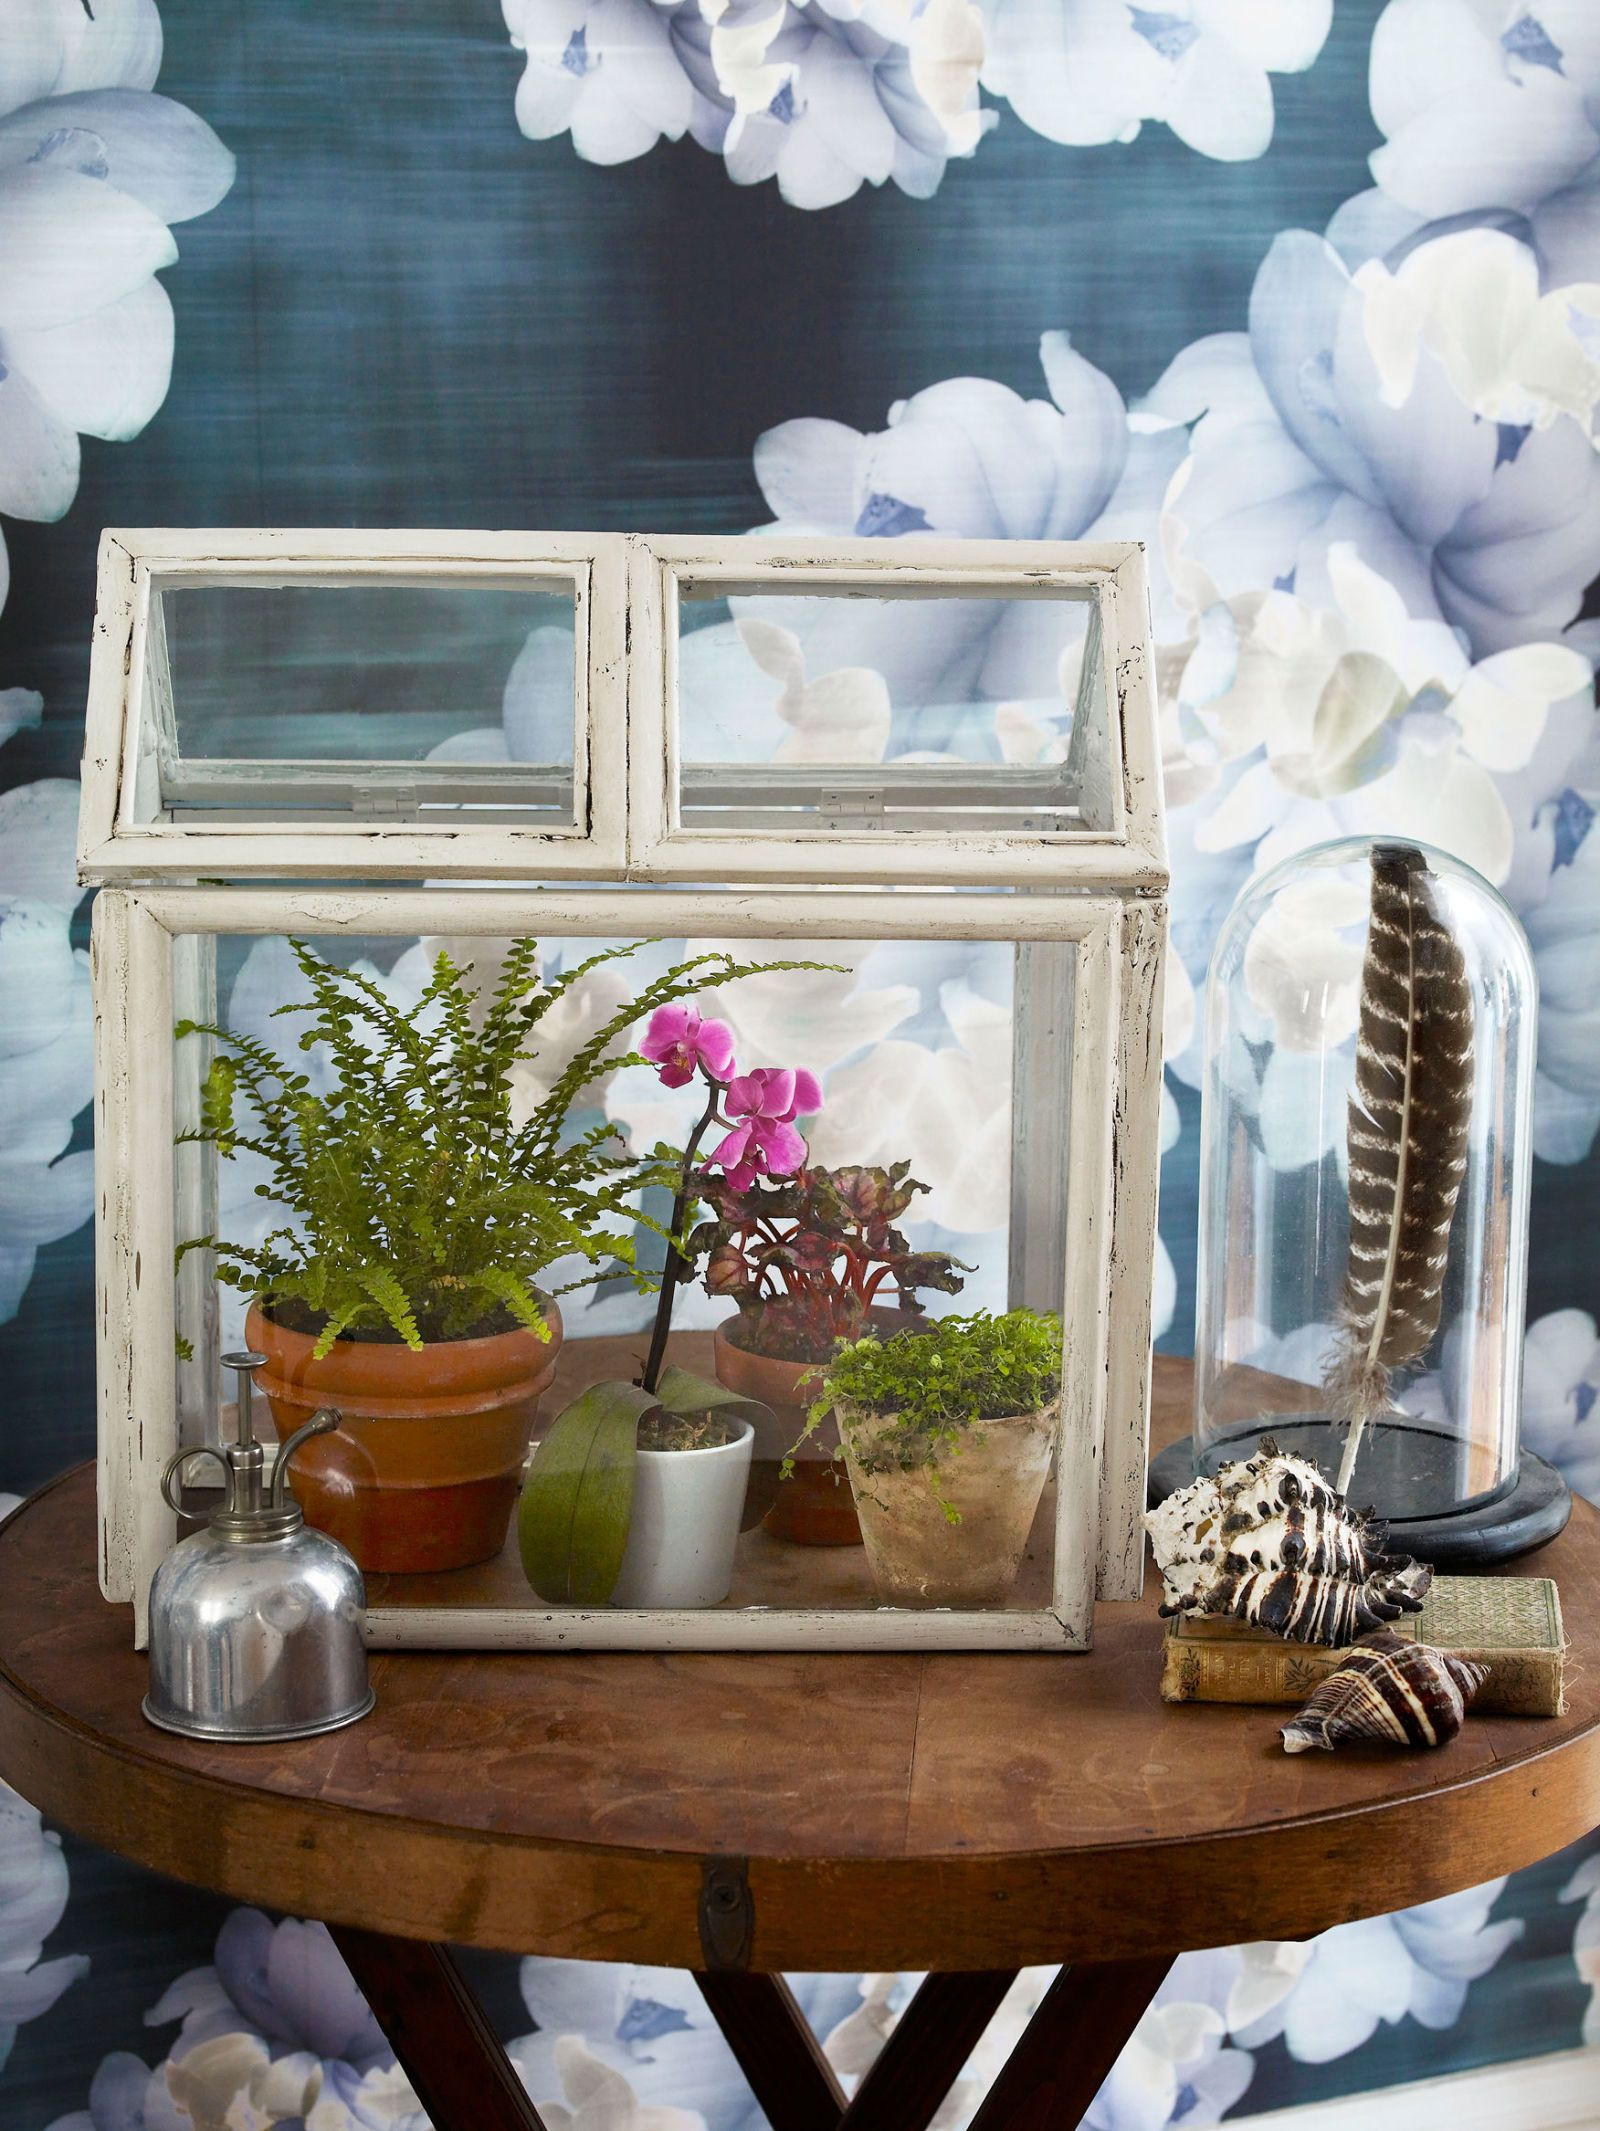 How to Make a DIY Terrarium Using Old Picture Frames | gardening ...